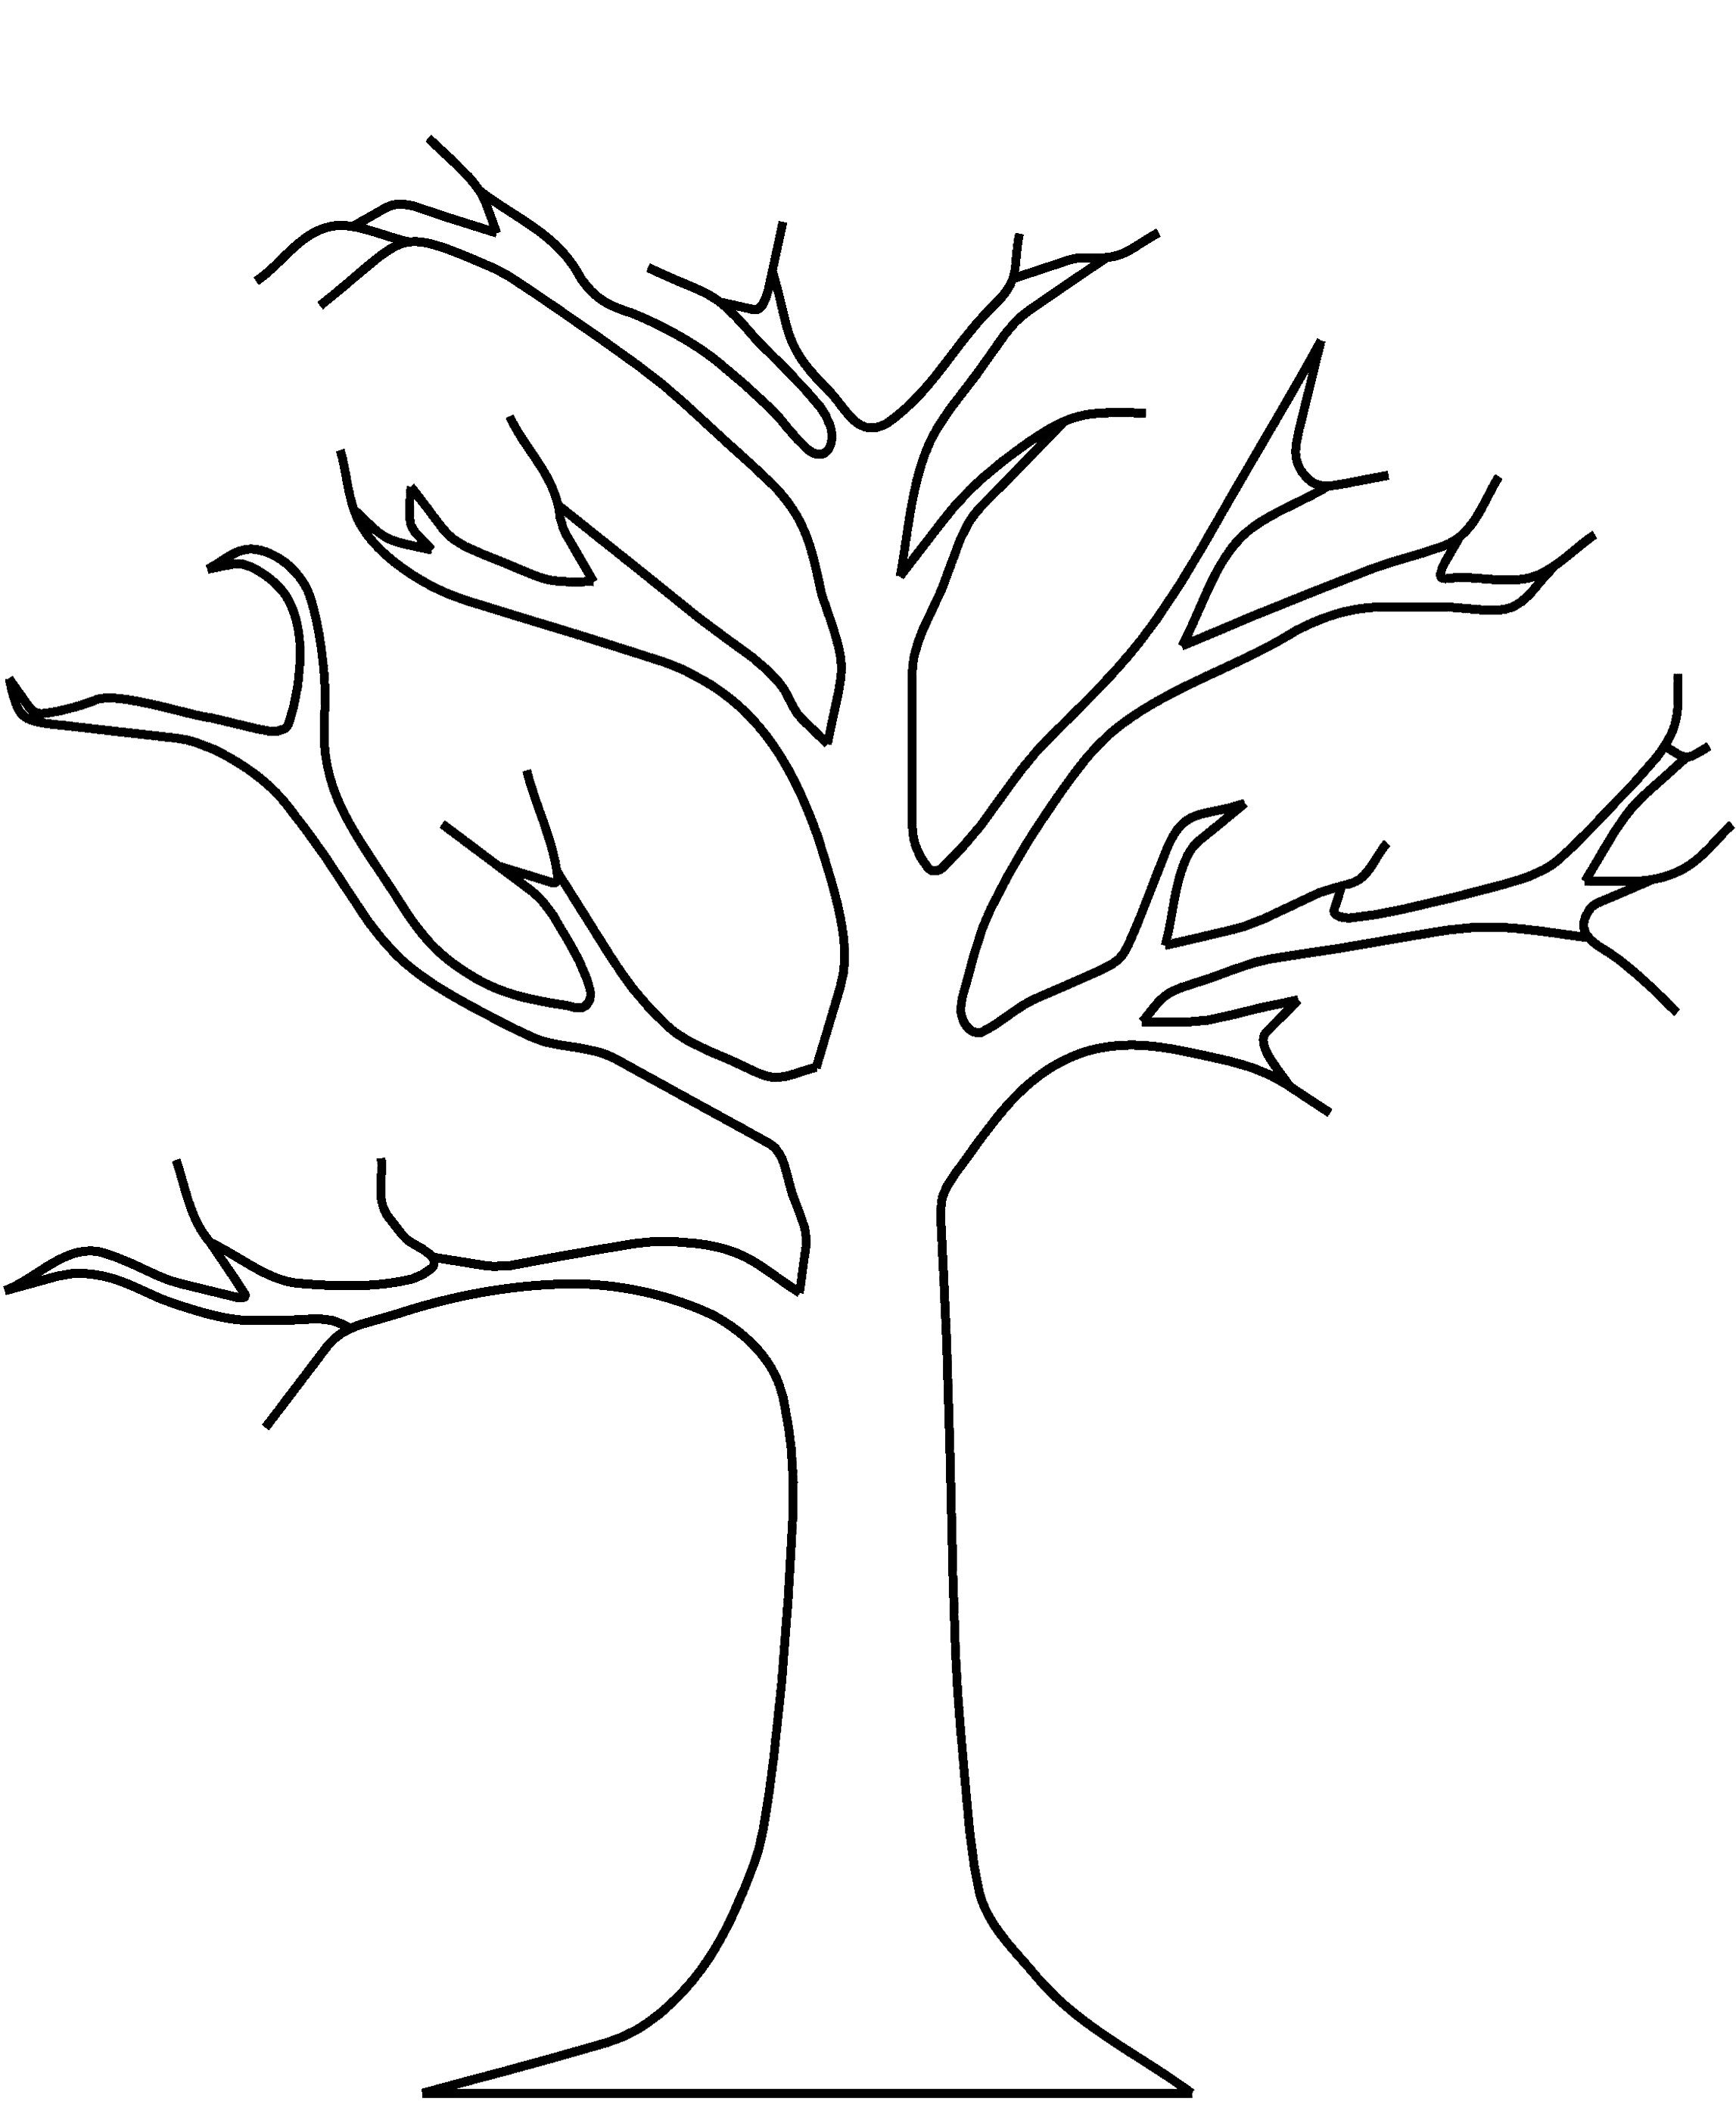 autumn tree coloring pages | art flowers!!!!!! | Pinterest | Leaves ...